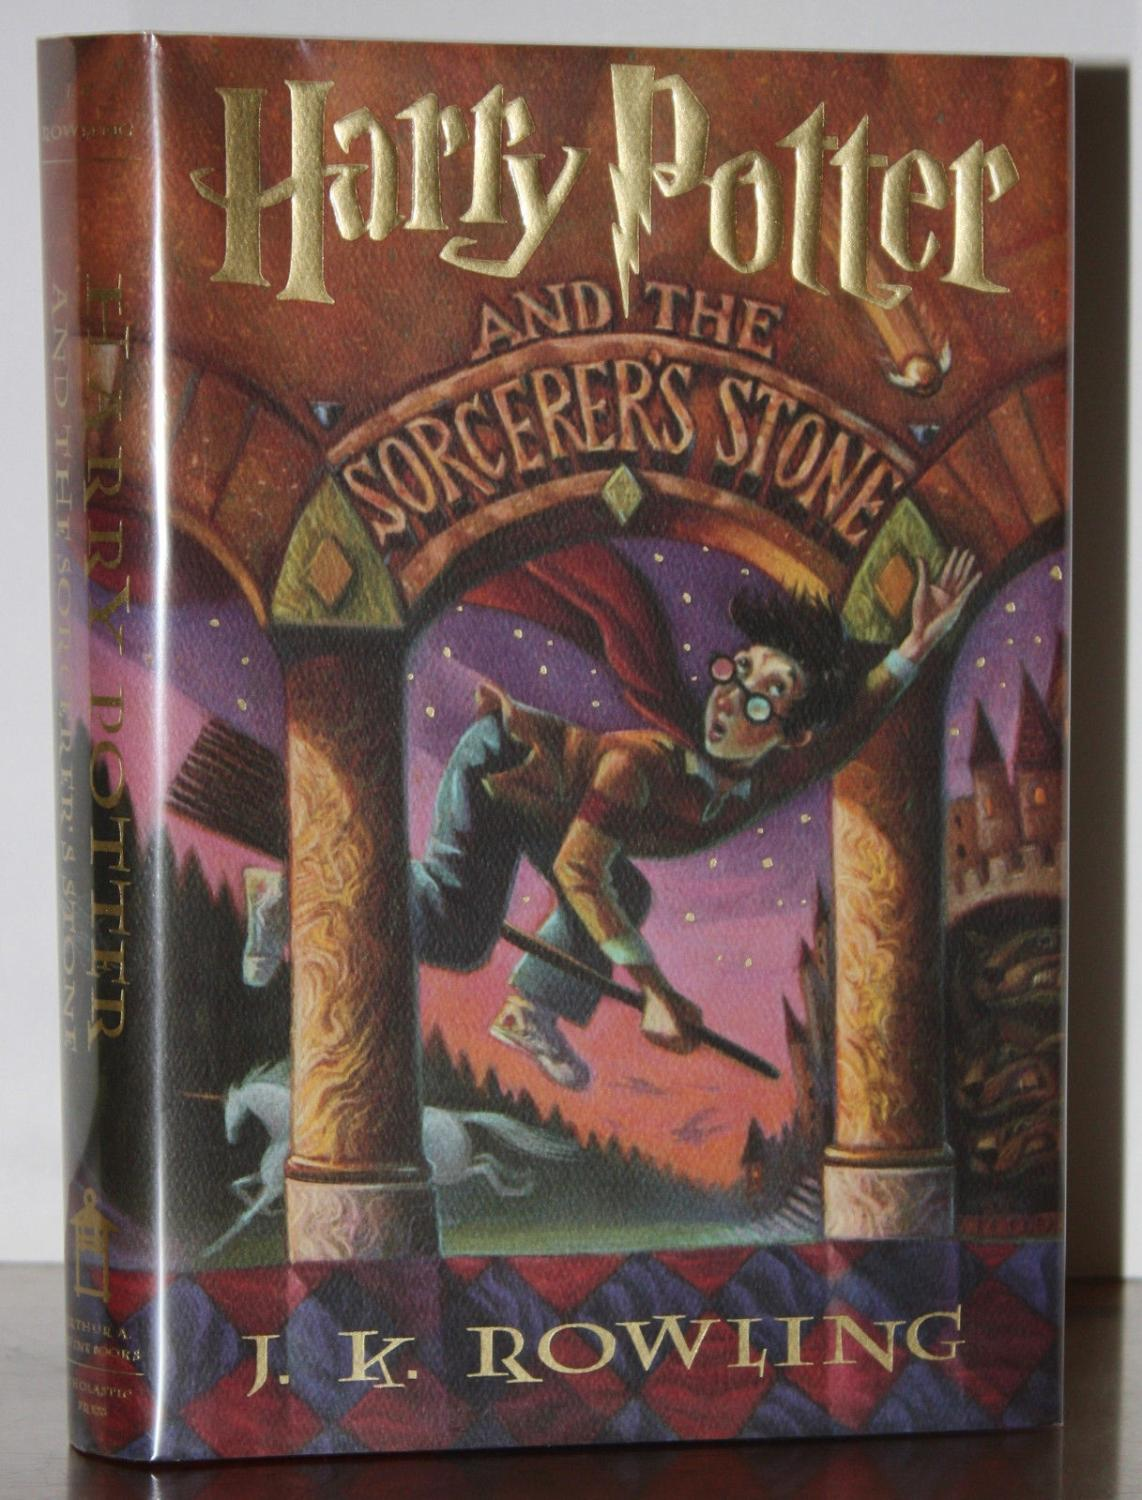 HARRY POTTER AND THE SORCERER'S STONE by J.K. ROWLING ...